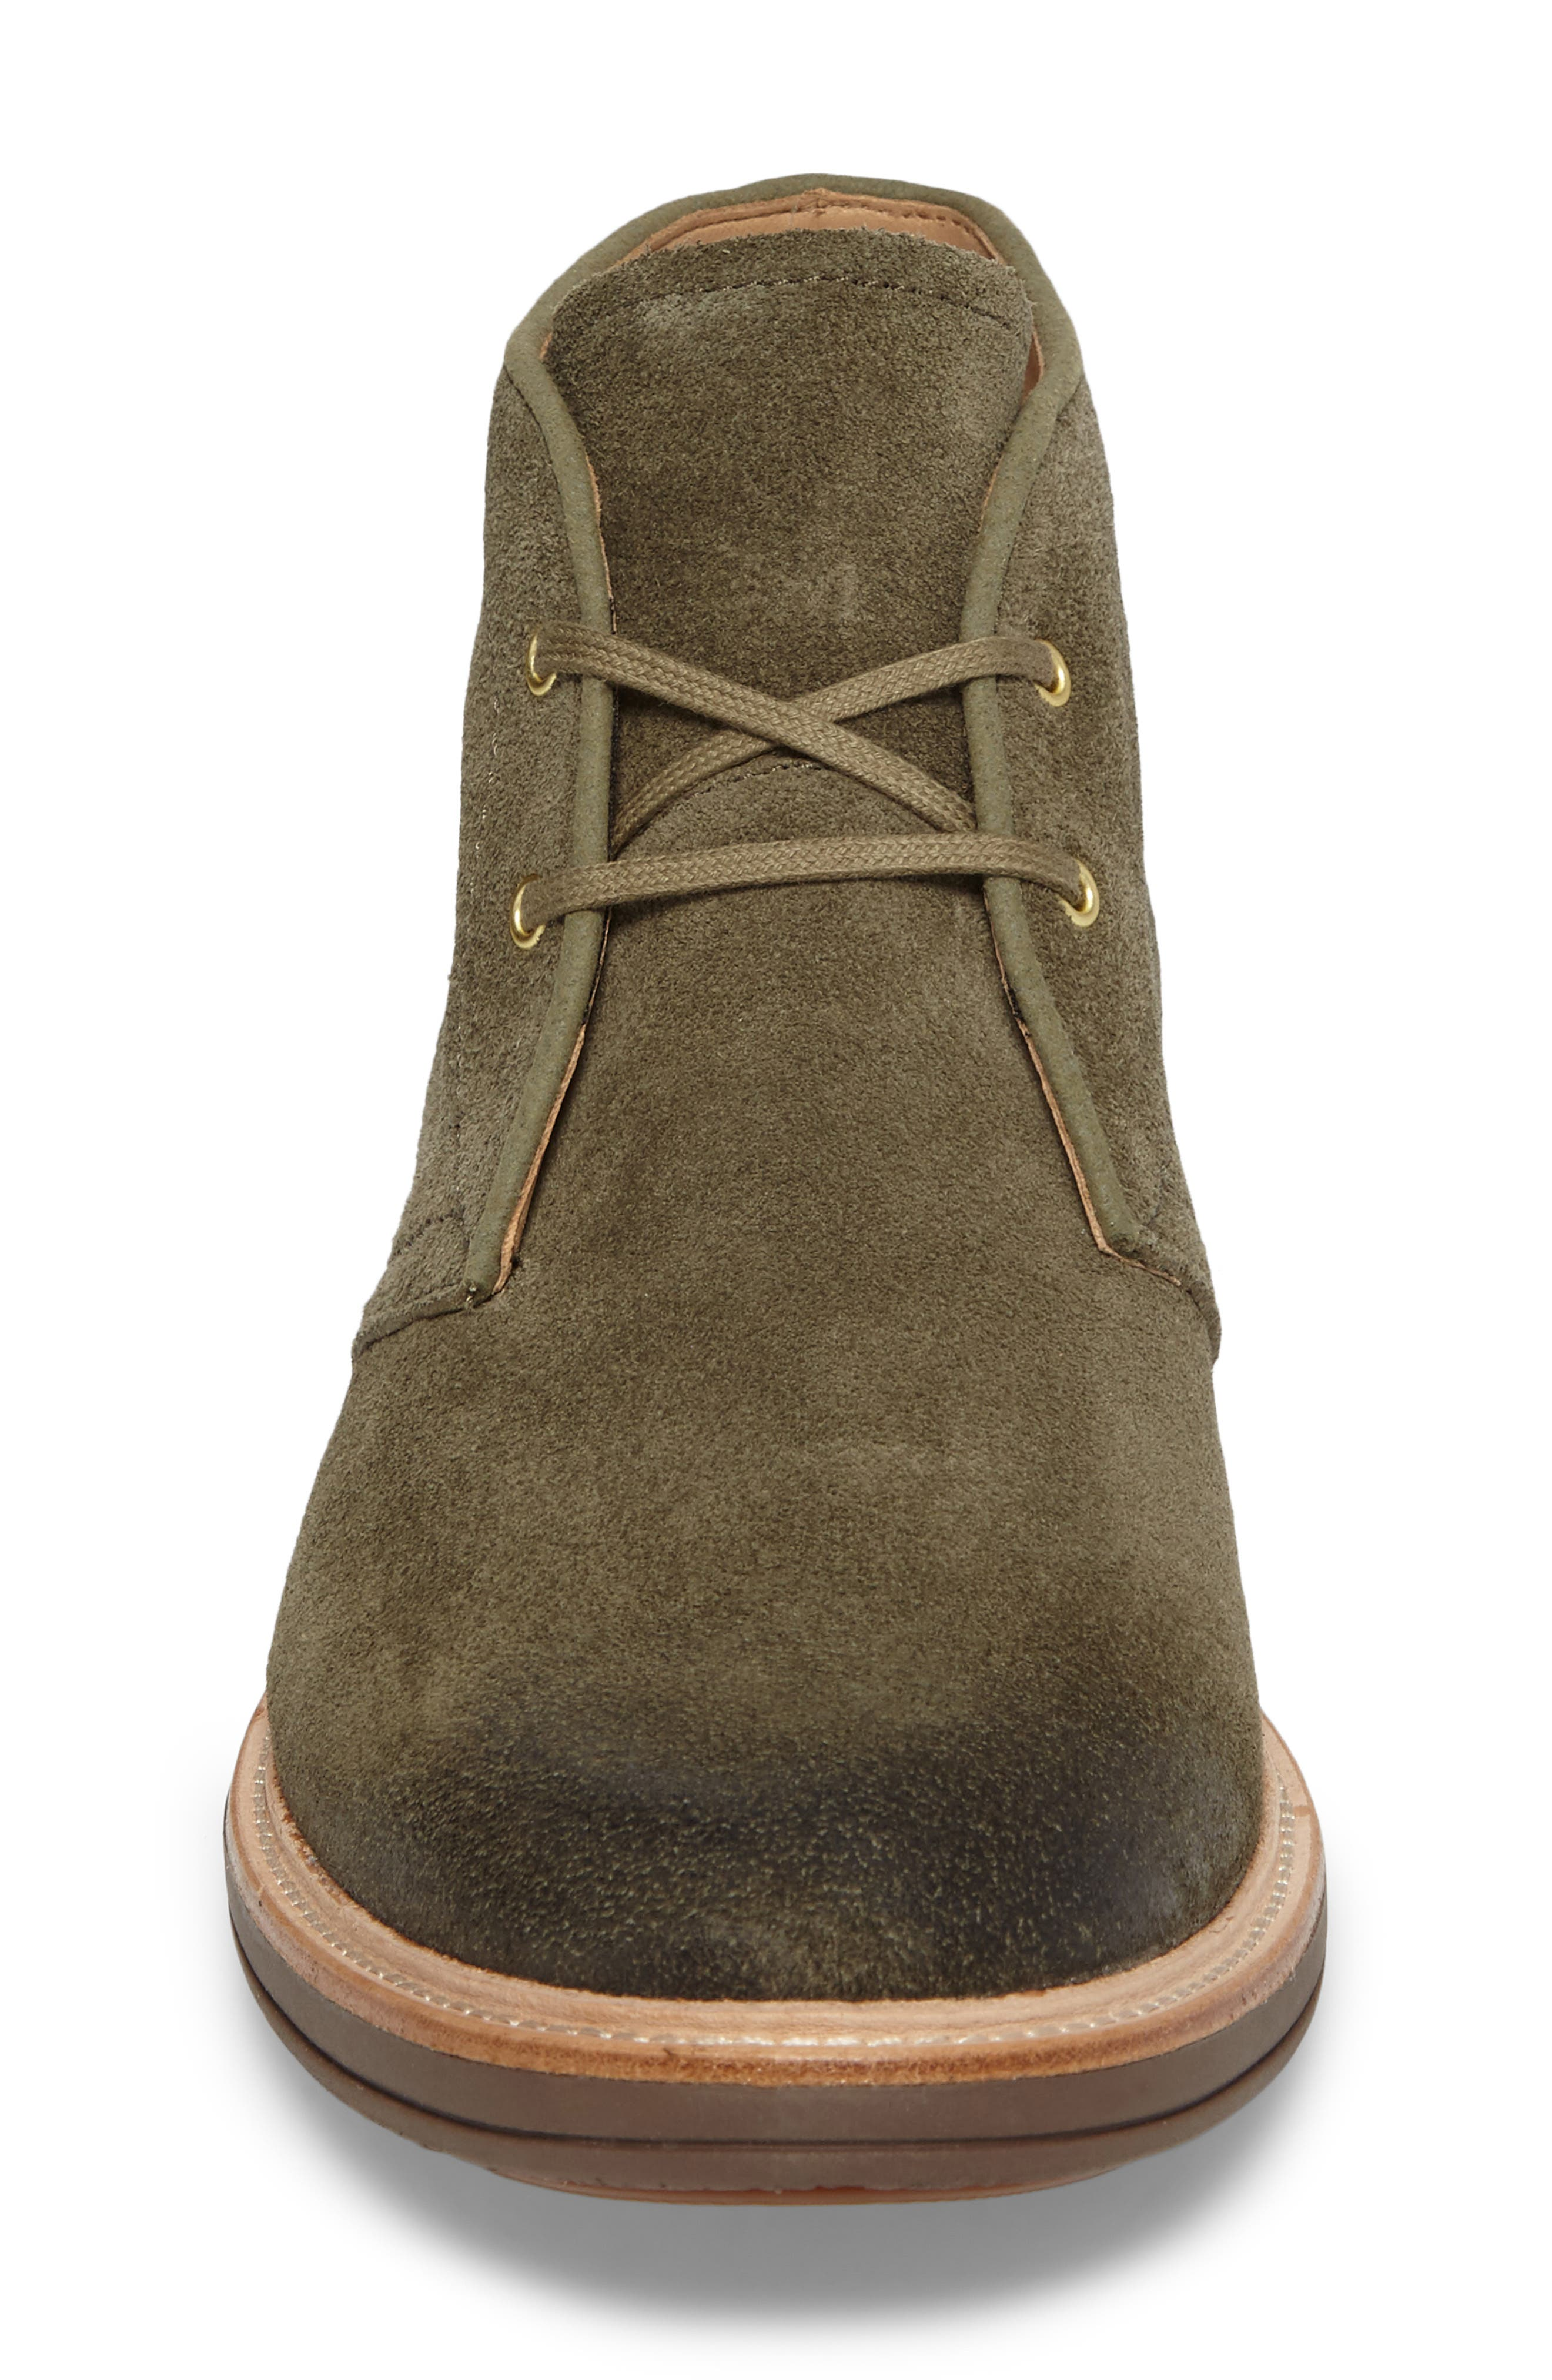 Australia Dagmann Chukka Boot,                             Alternate thumbnail 4, color,                             Olive